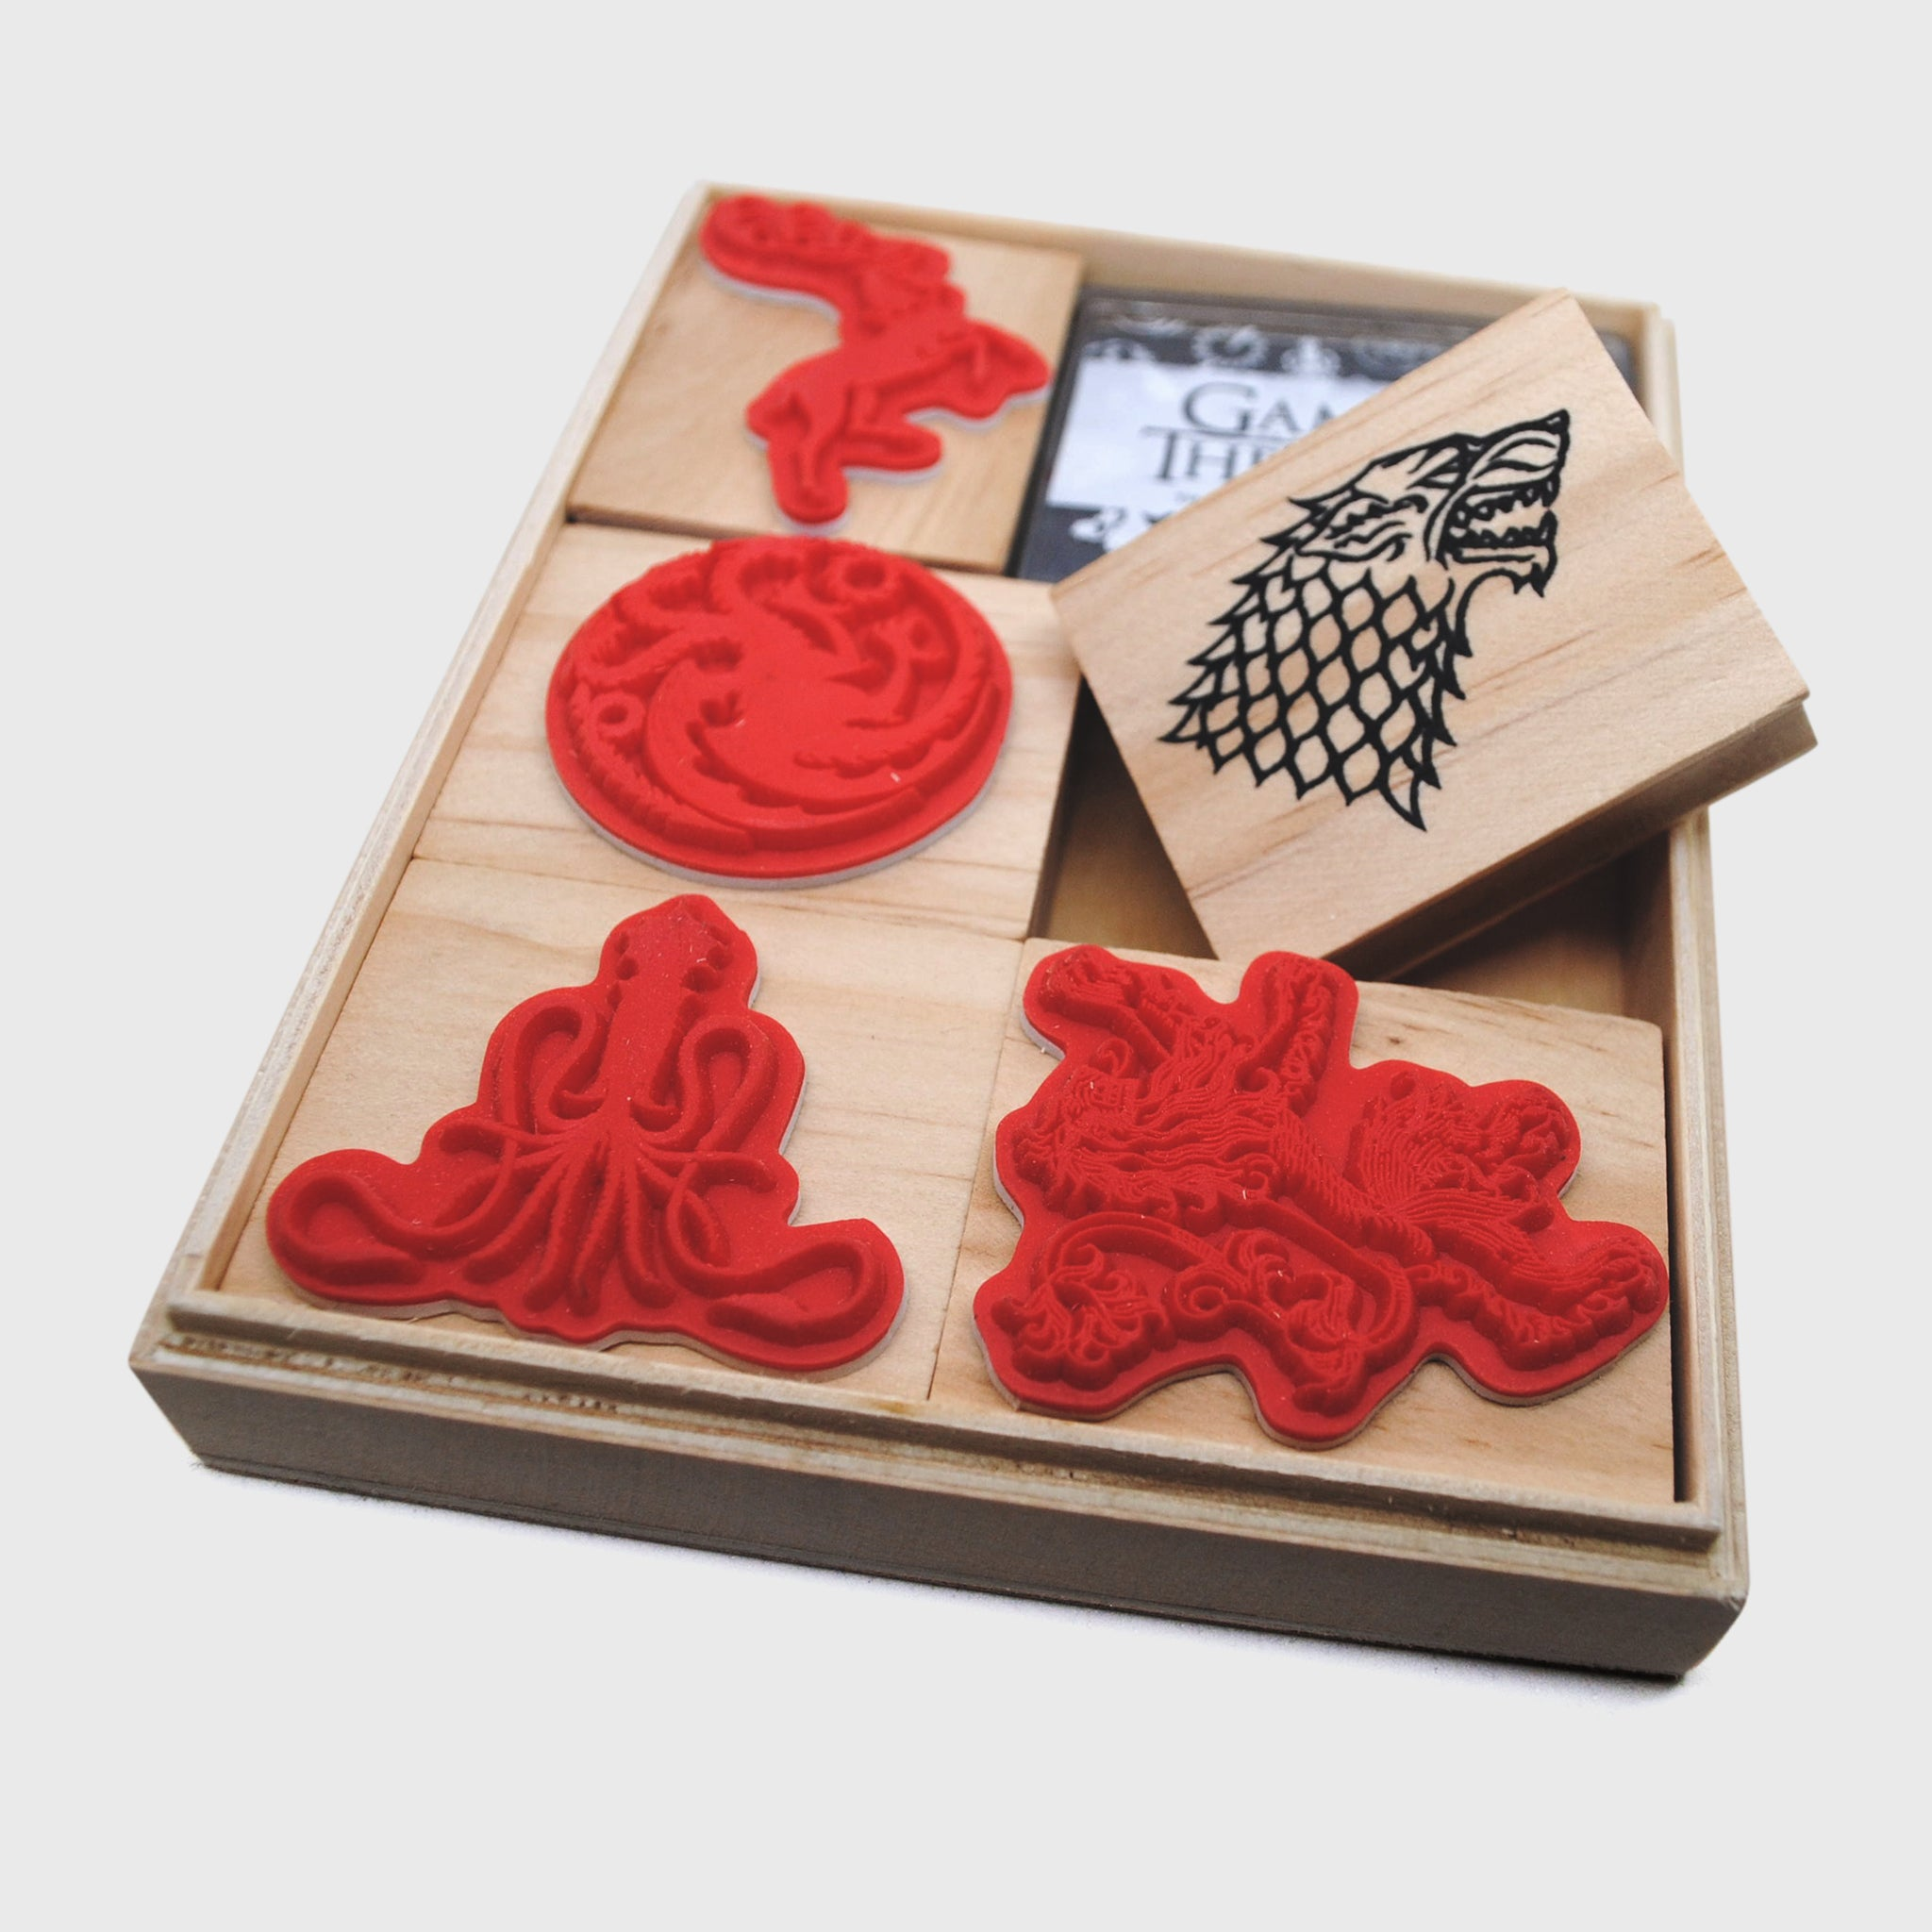 game of thrones got box collectibles exclusives stark sigil tyrell targaryen stamp set kitchenware home goods office home collector collection culturefl